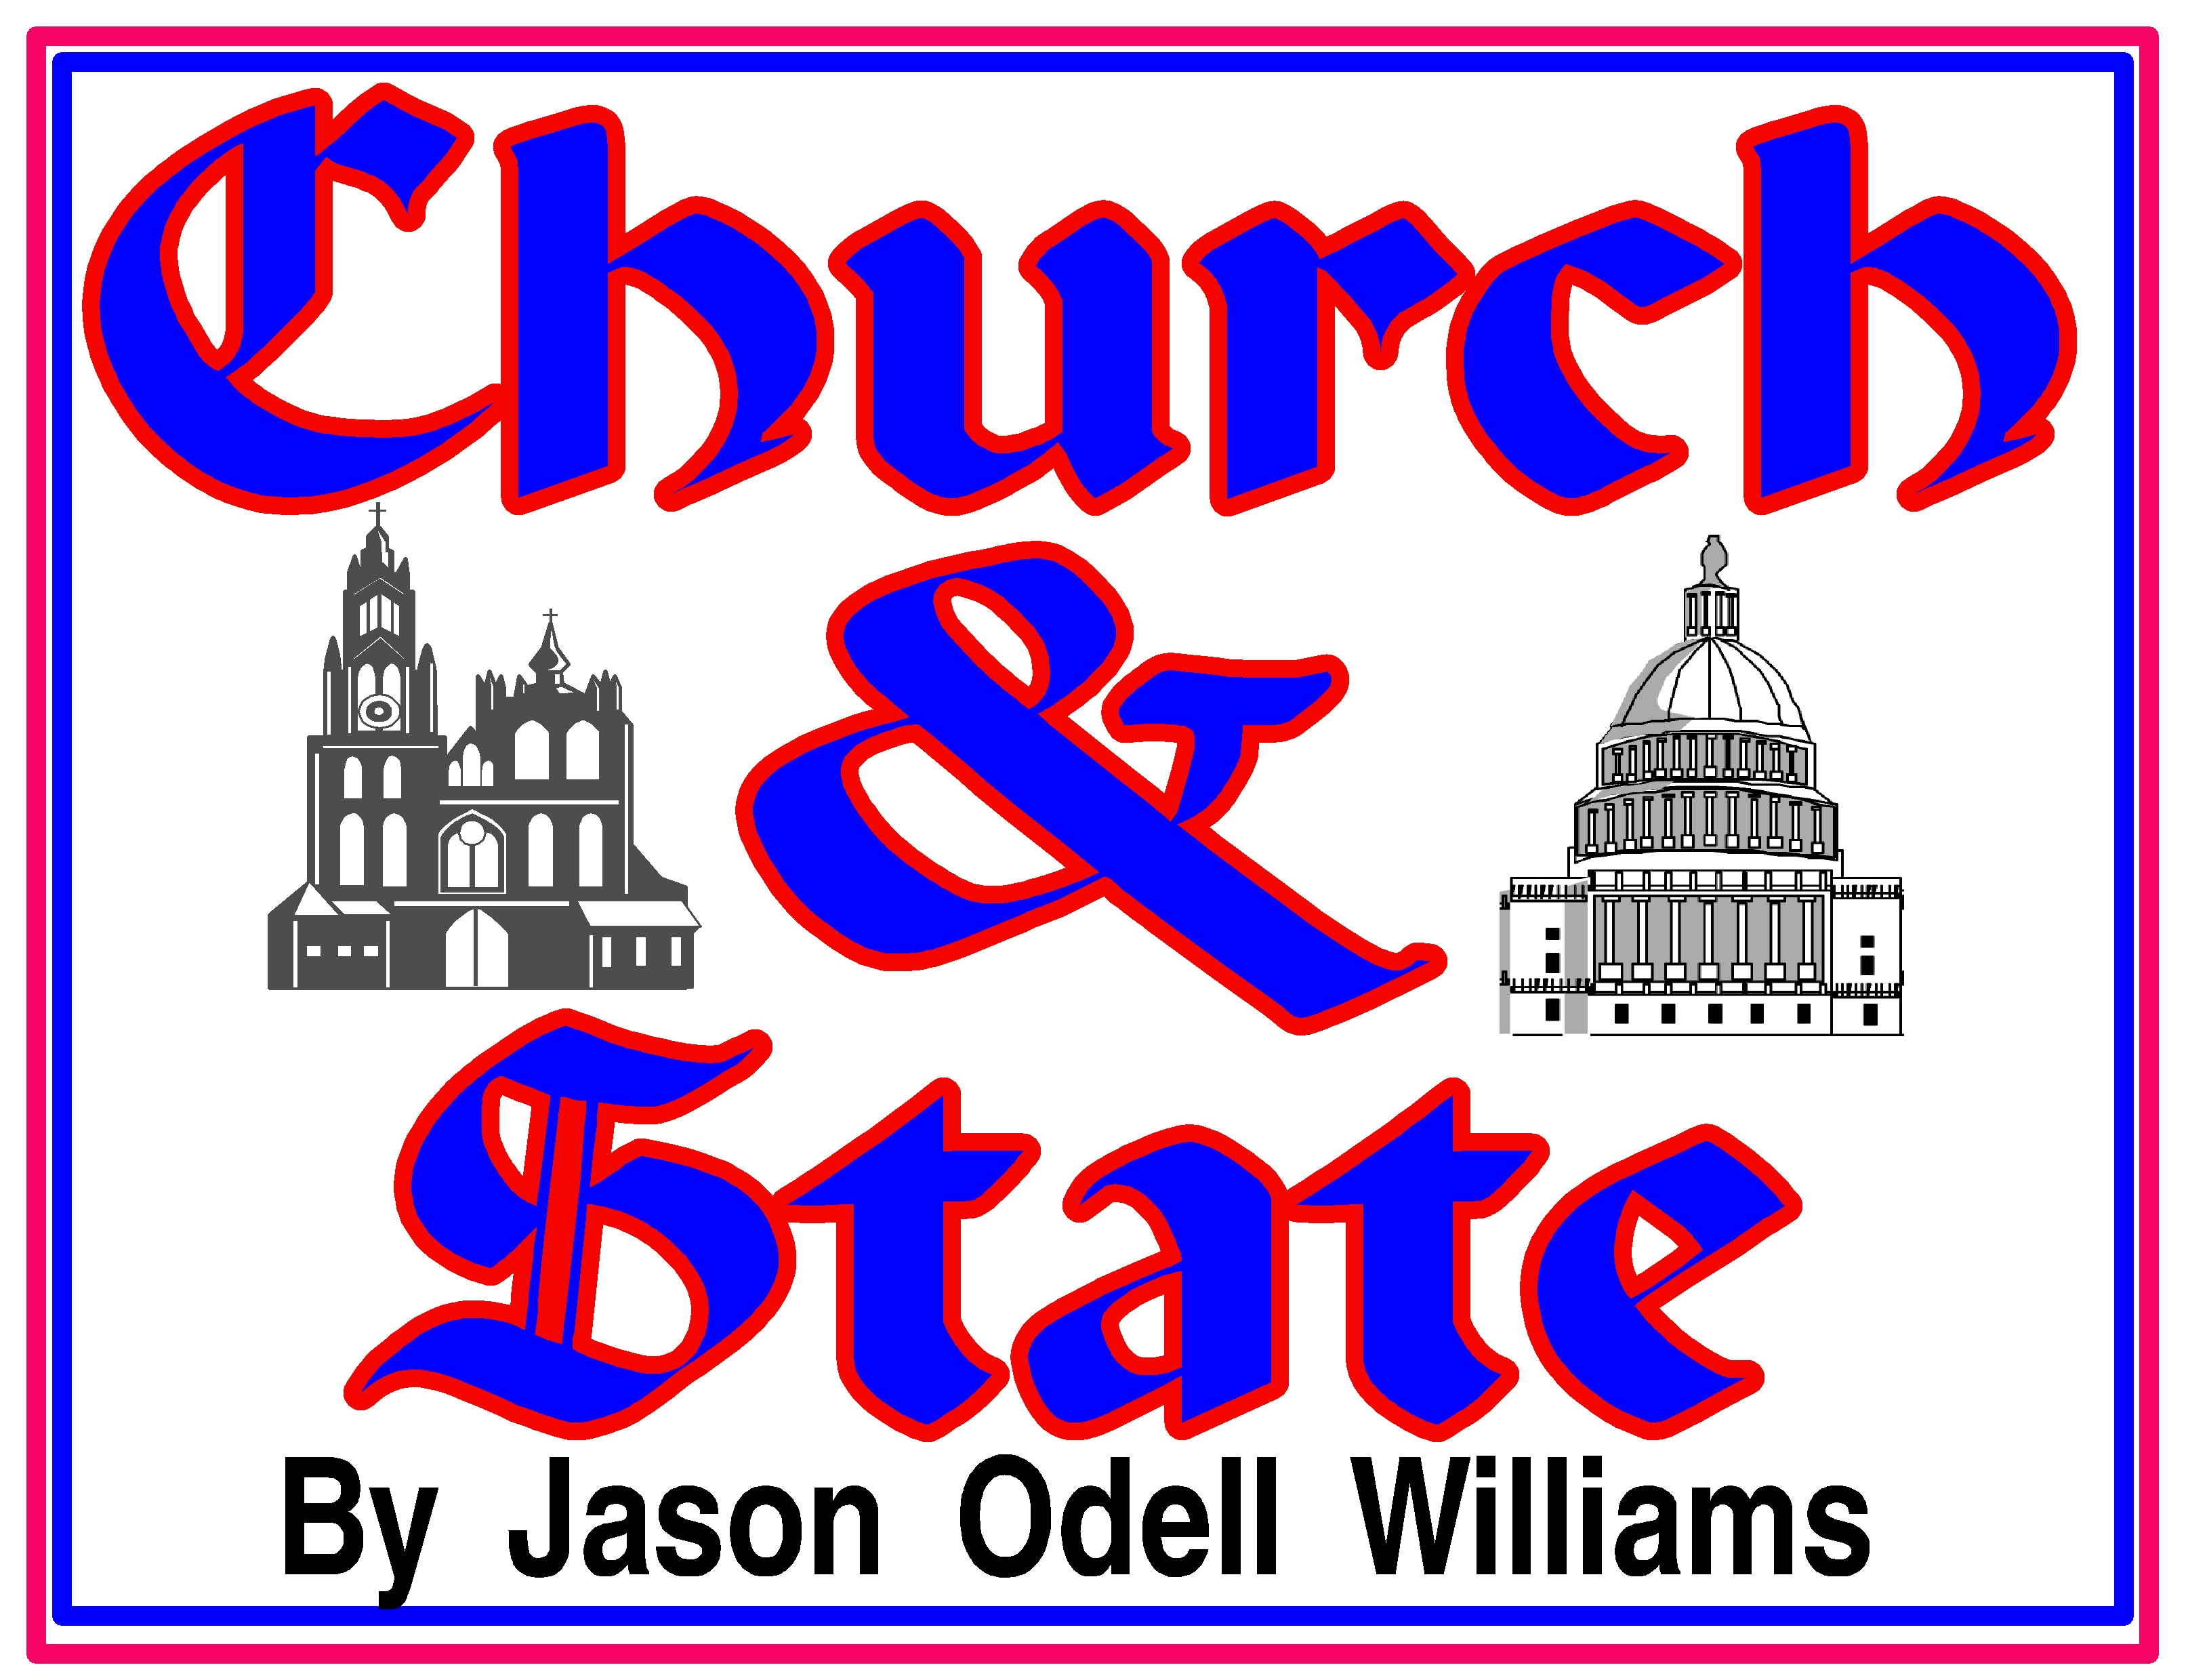 Church & State rectangle